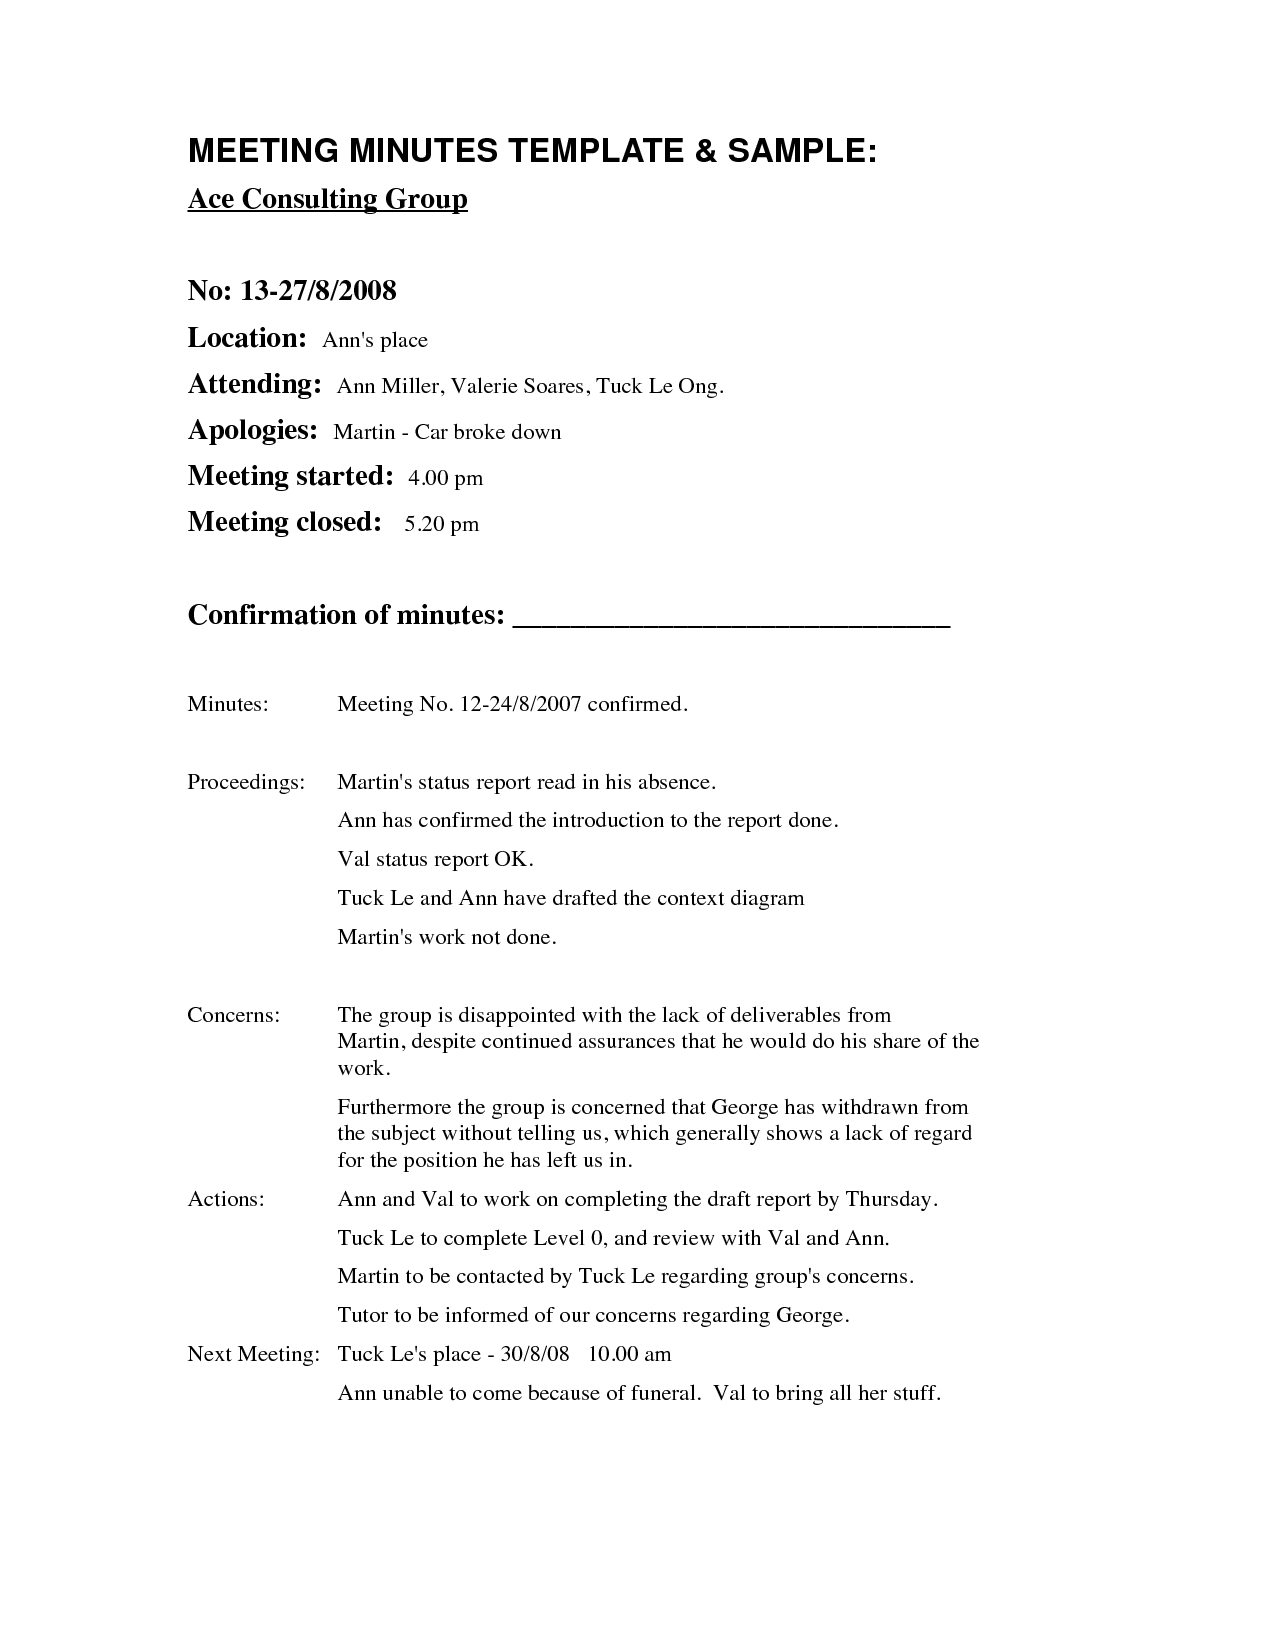 Meeting Minutes Template Absent Invitation Template Ideas